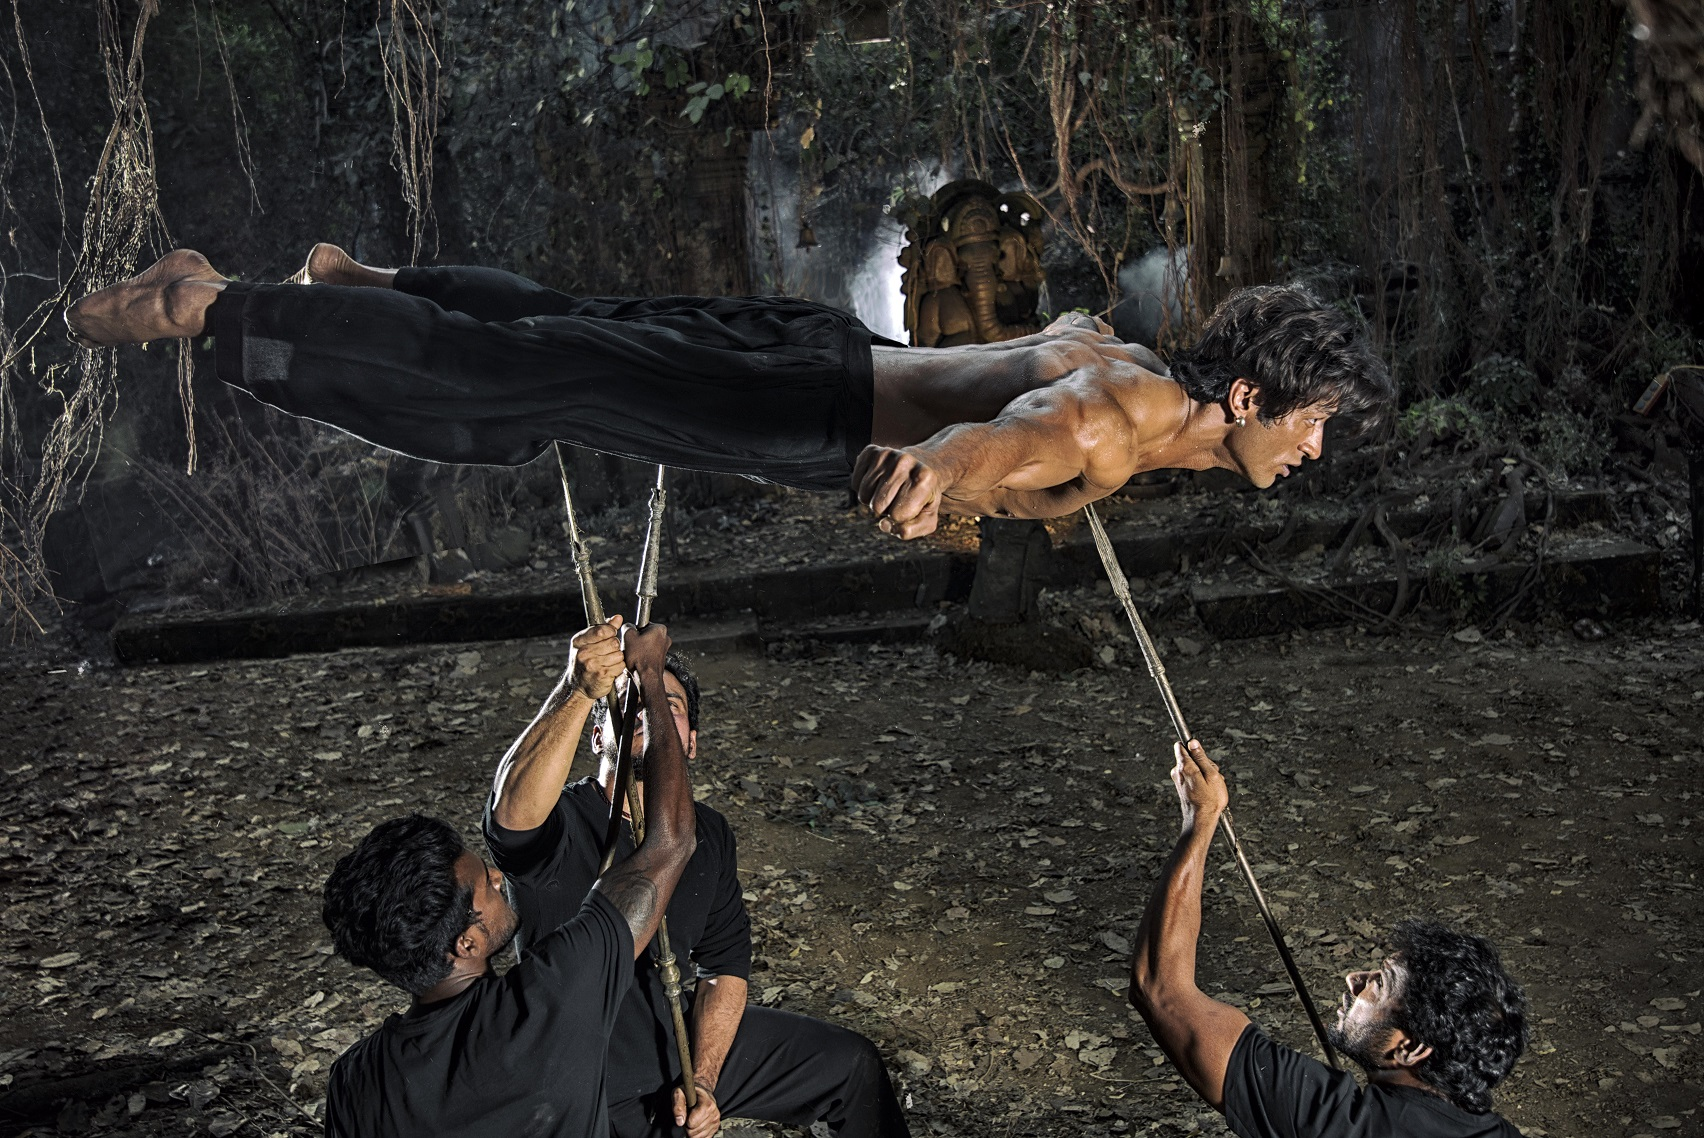 Looper places Vidyut Jamwal among the list of top martial artists across the globe.